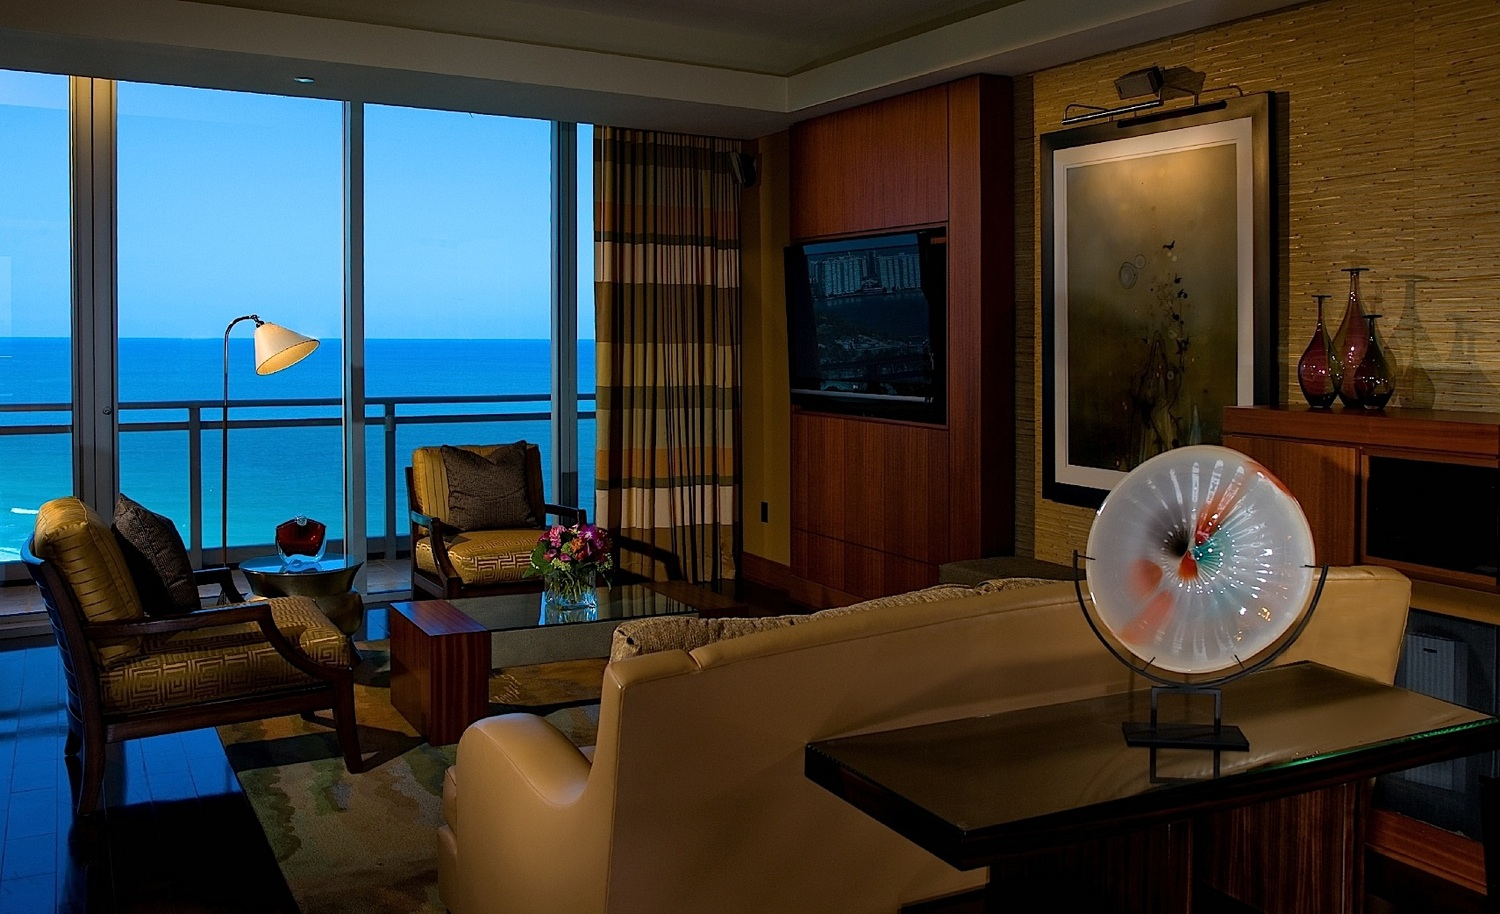 Passion for luxury one bal harbour miami luxury resort Living room bar w hotel miami